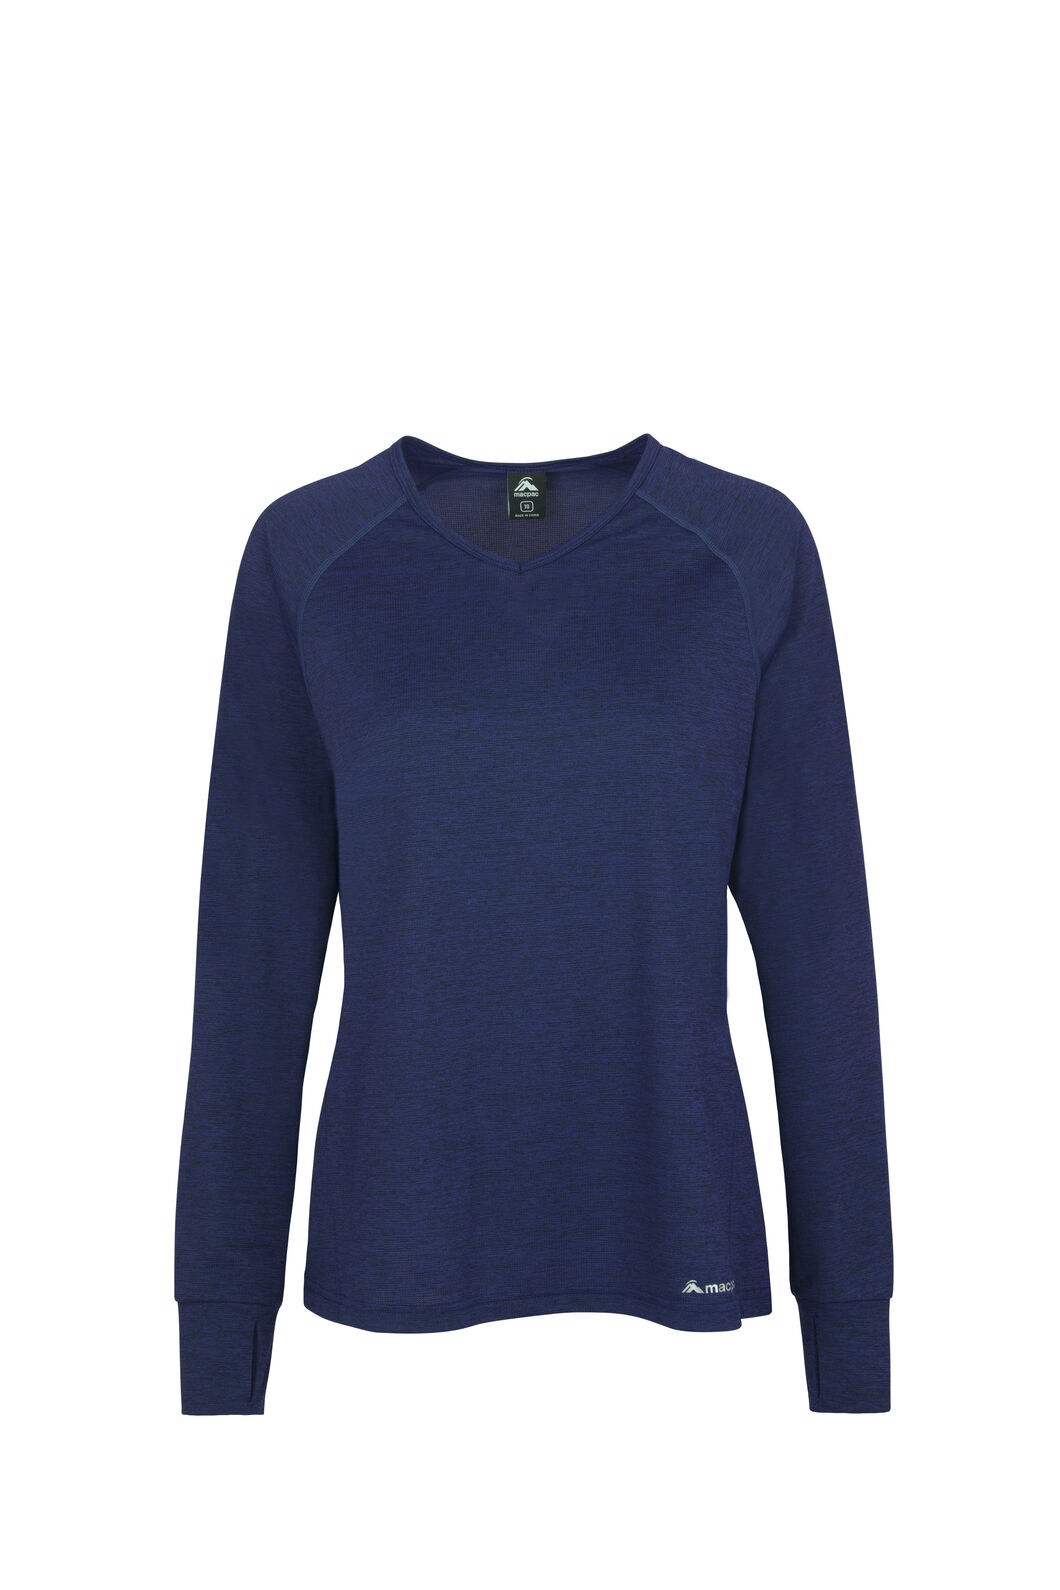 Macpac Take a Hike Long Sleeve Tee - Women's, Medieval Blue, hi-res